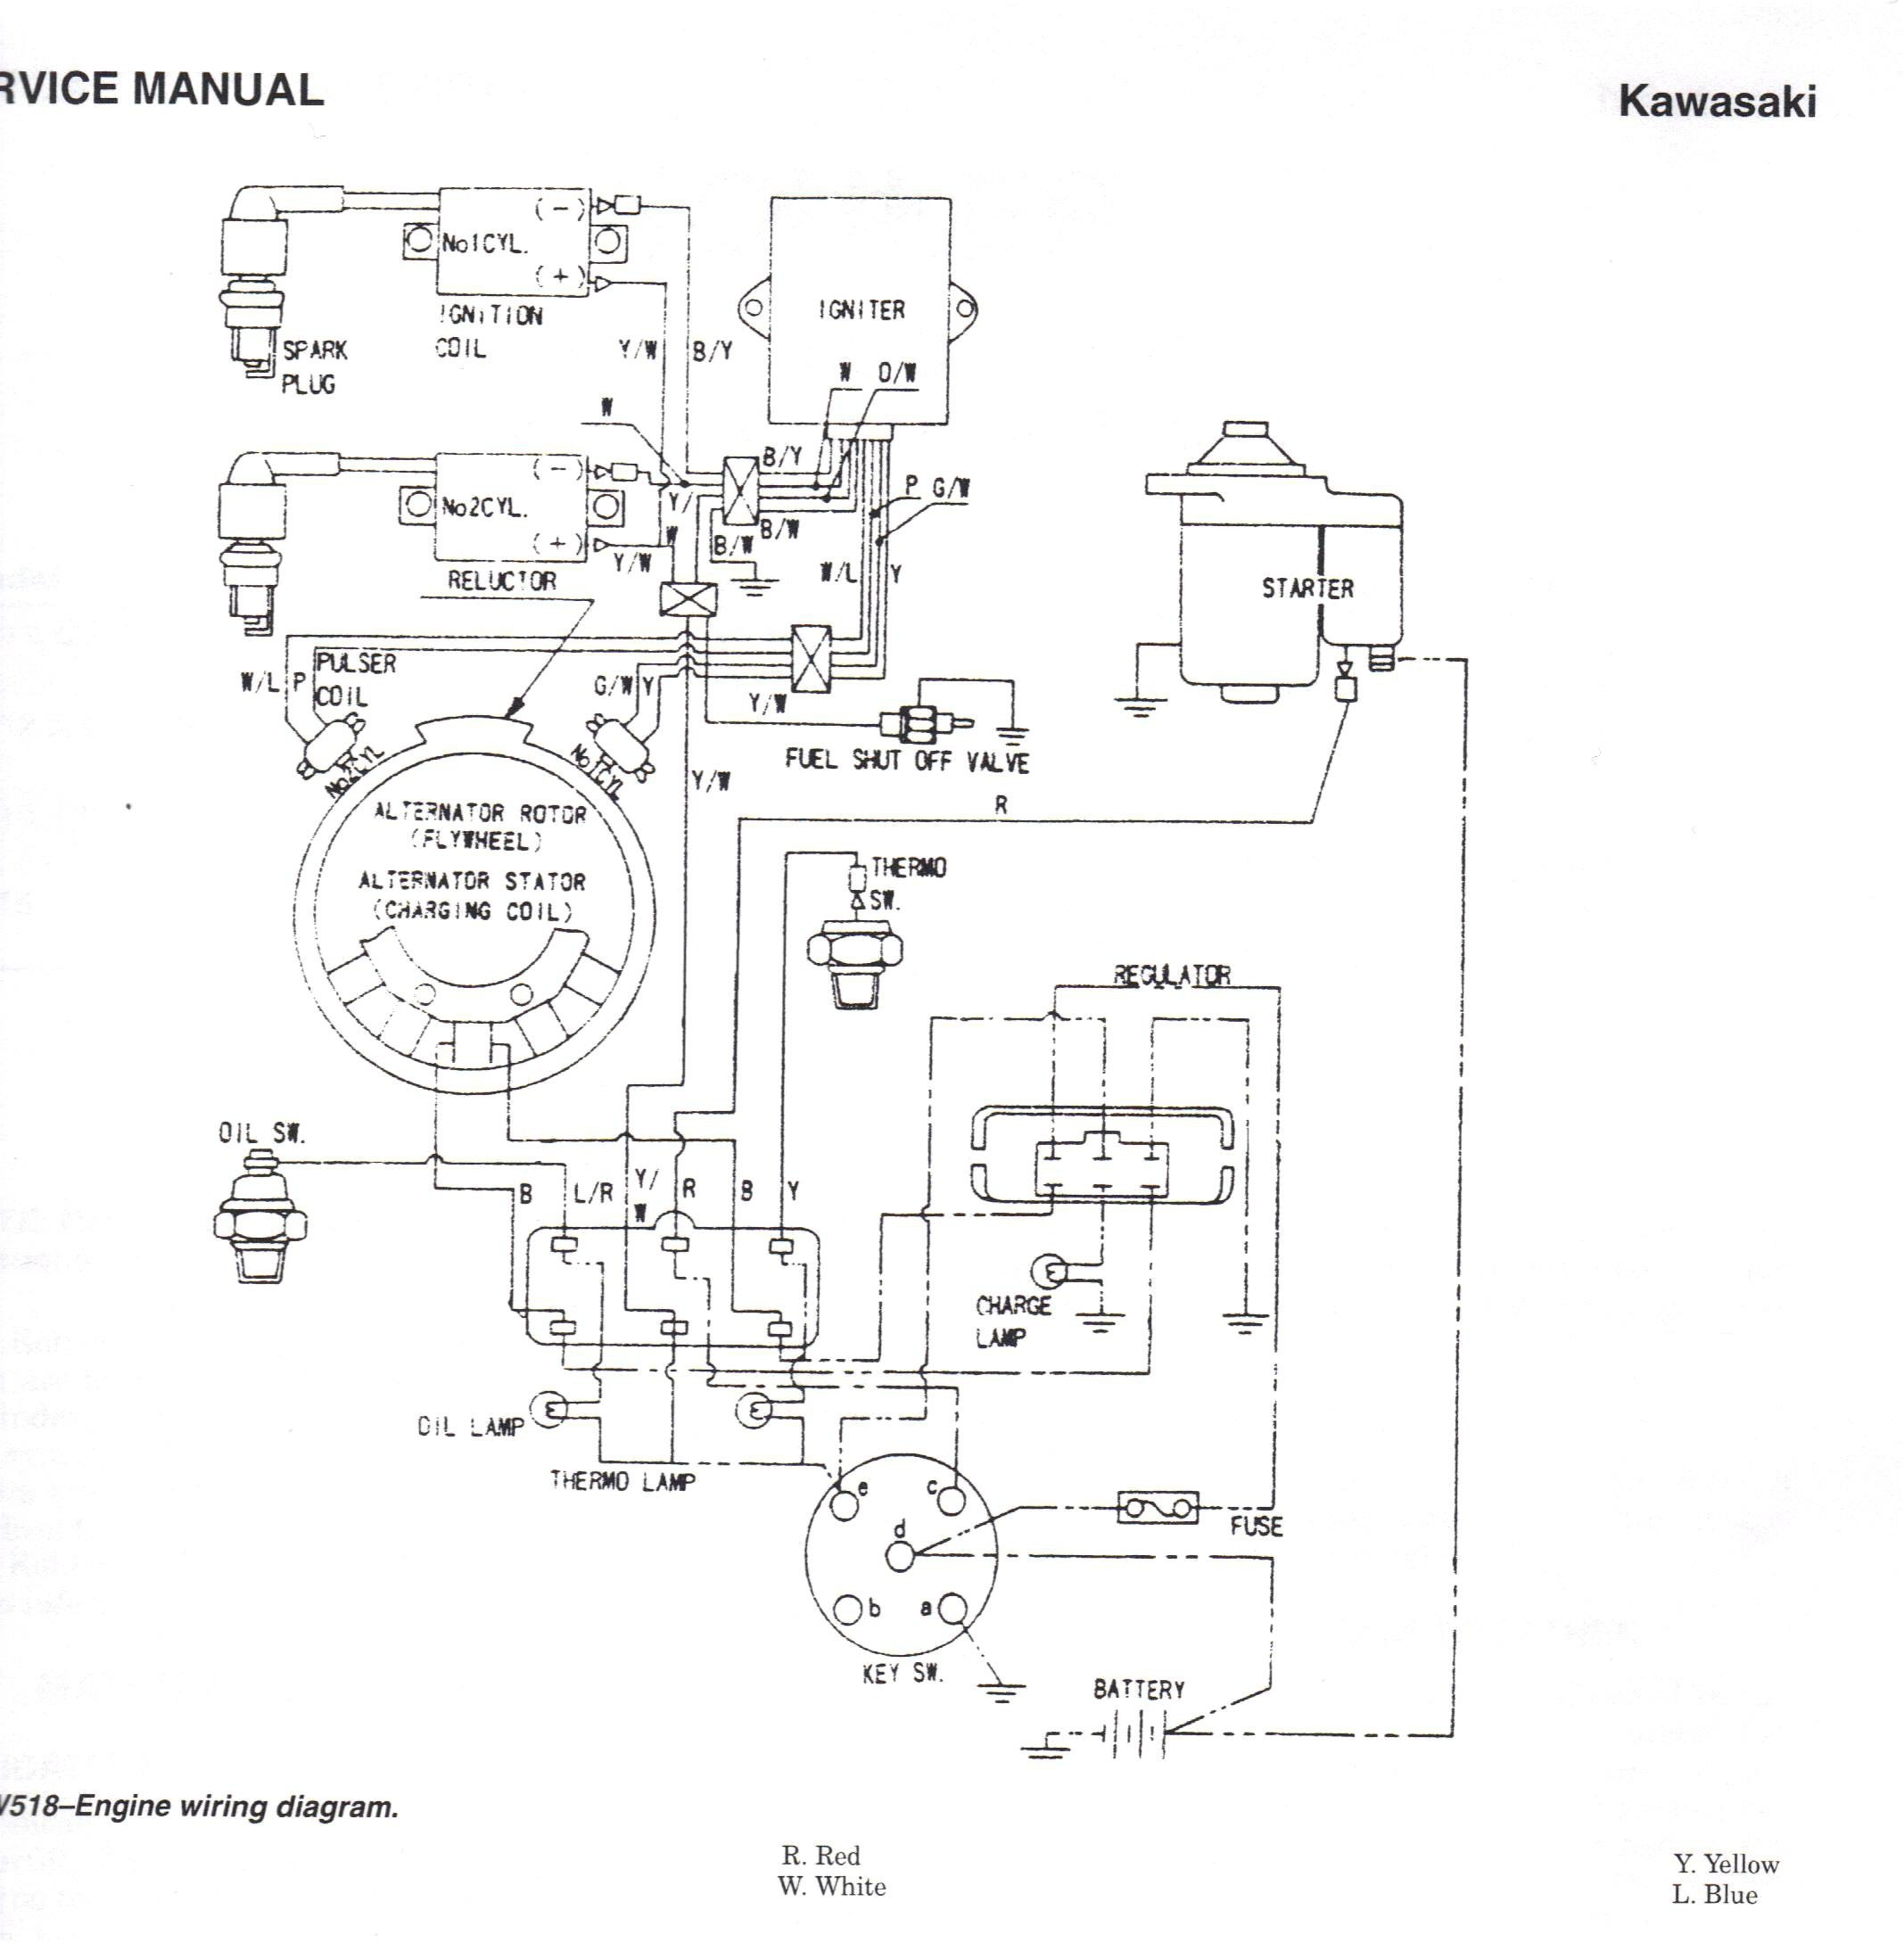 free kawasaki loader wiring diagrams